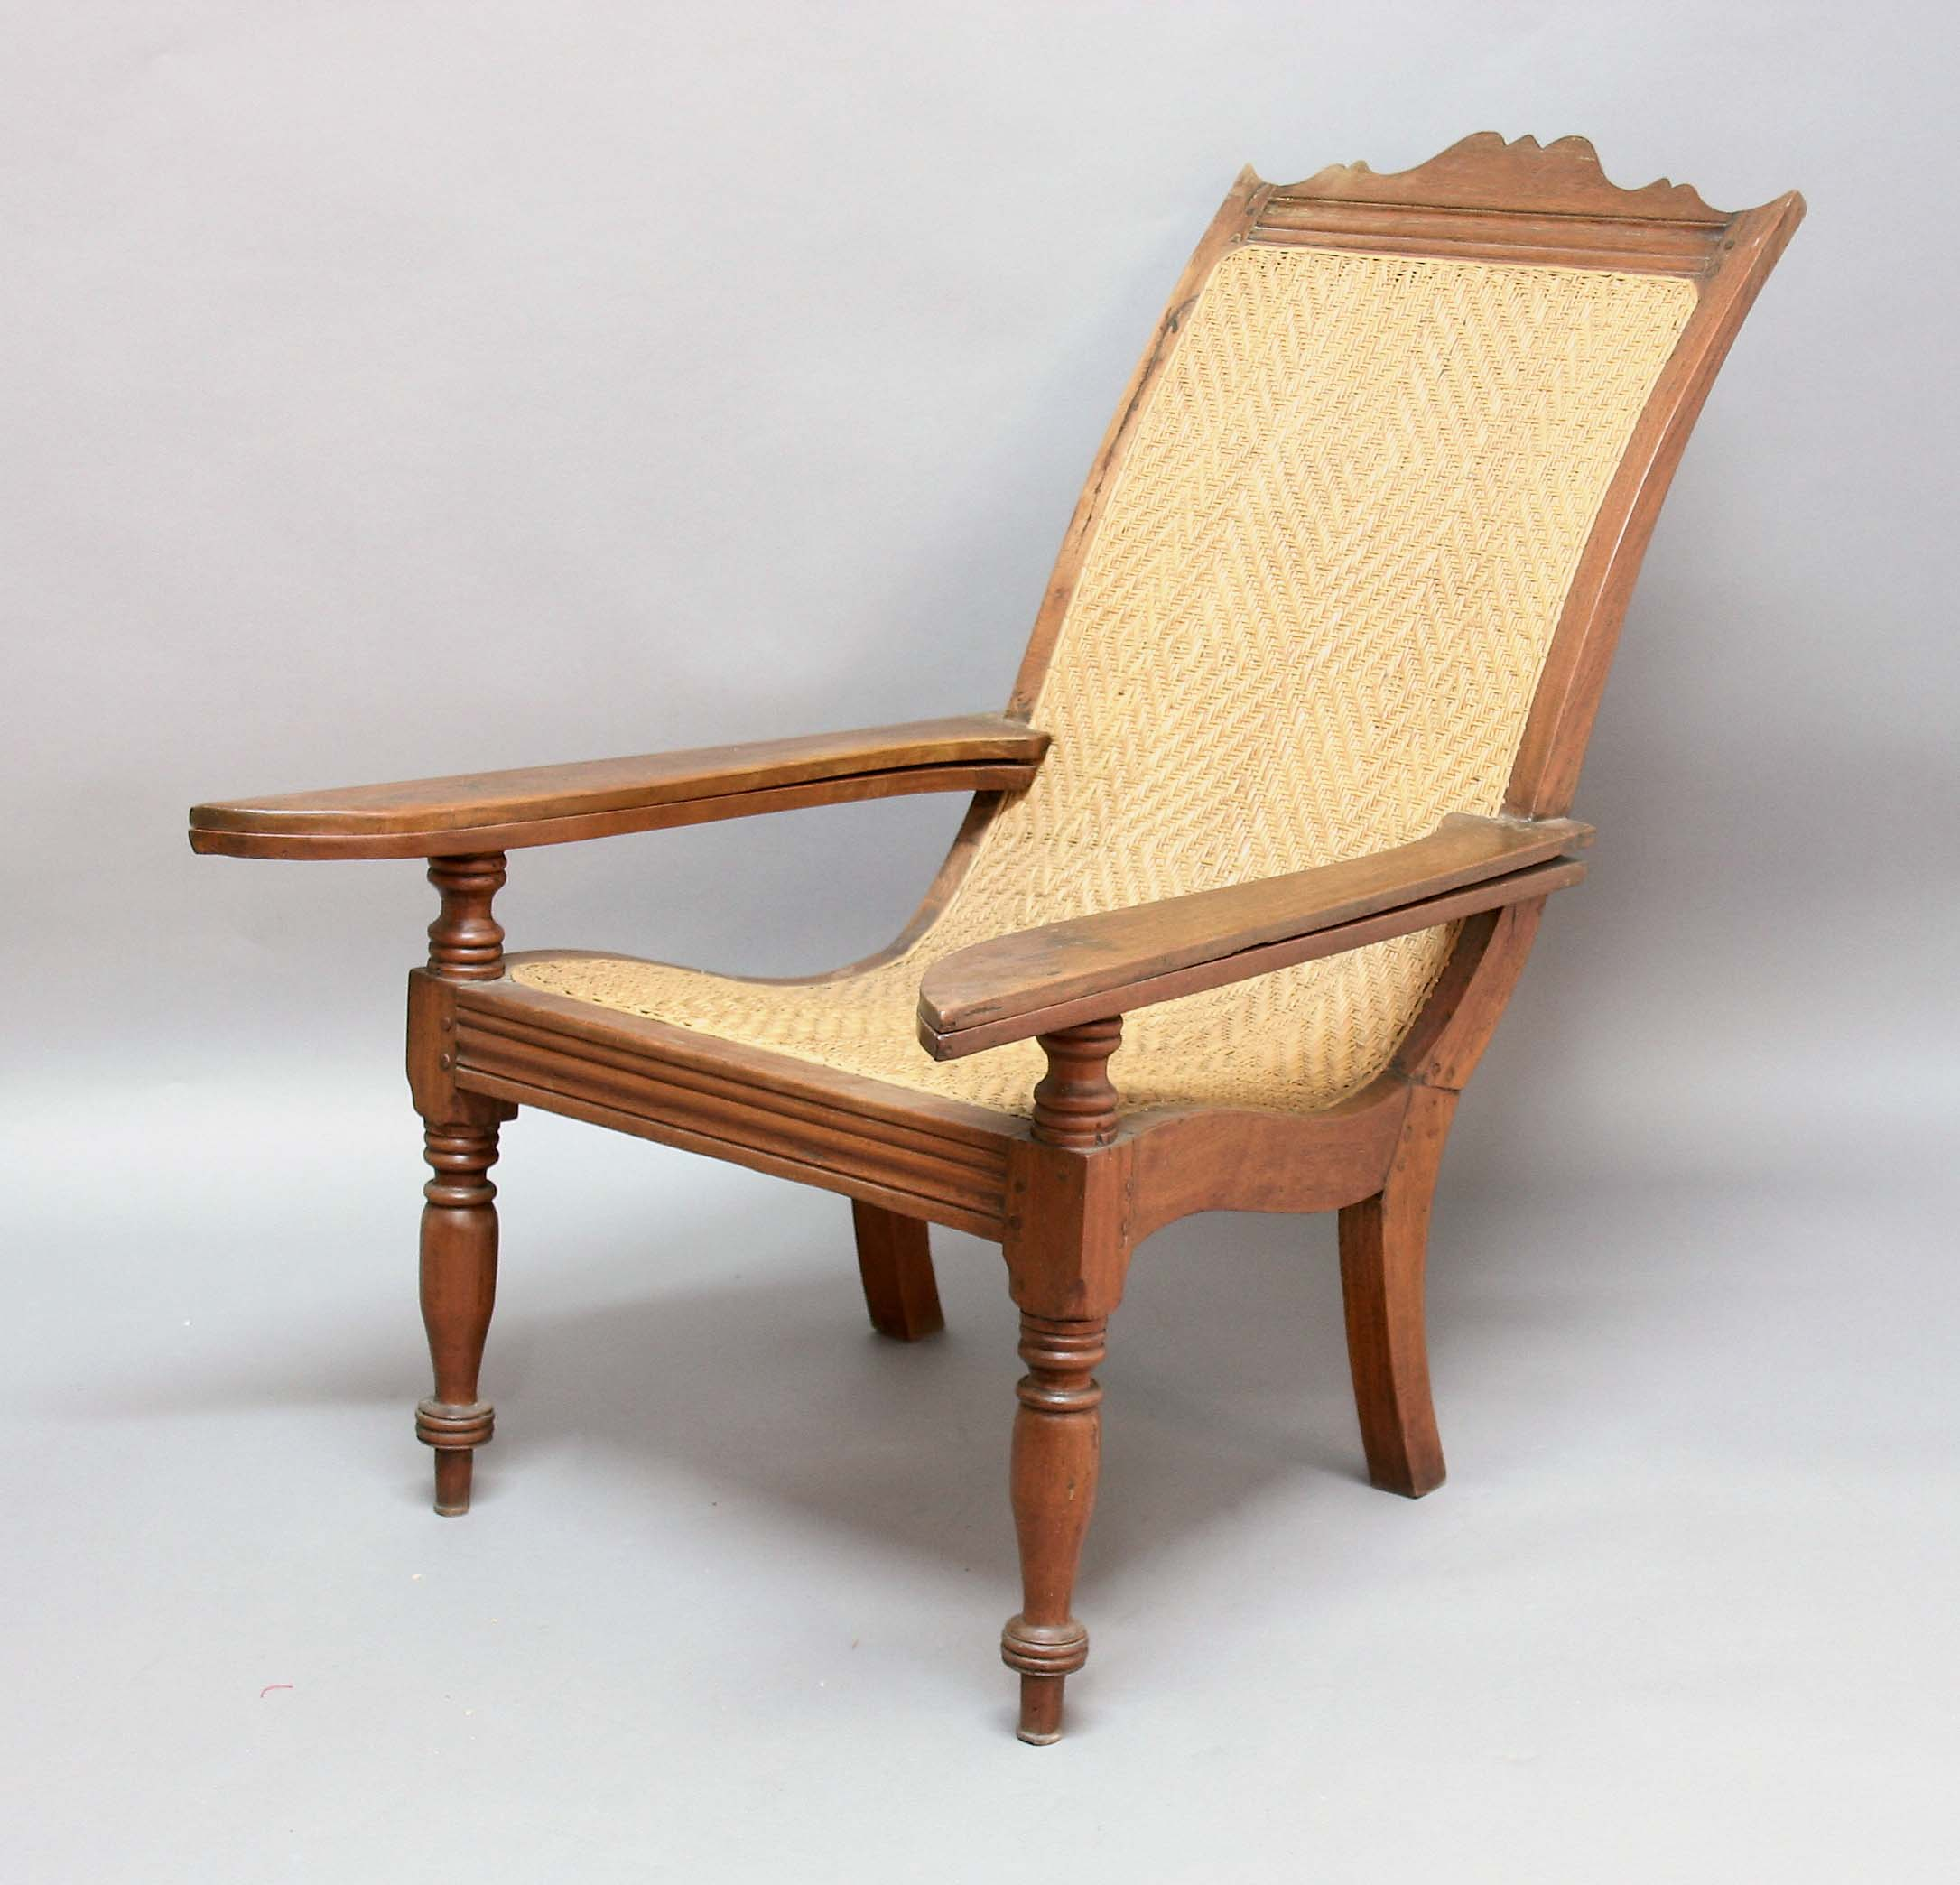 Teak plantation chair - Lot 2161 Colonial Teak Plantation Chair Early 20th Century With Caned Seat And